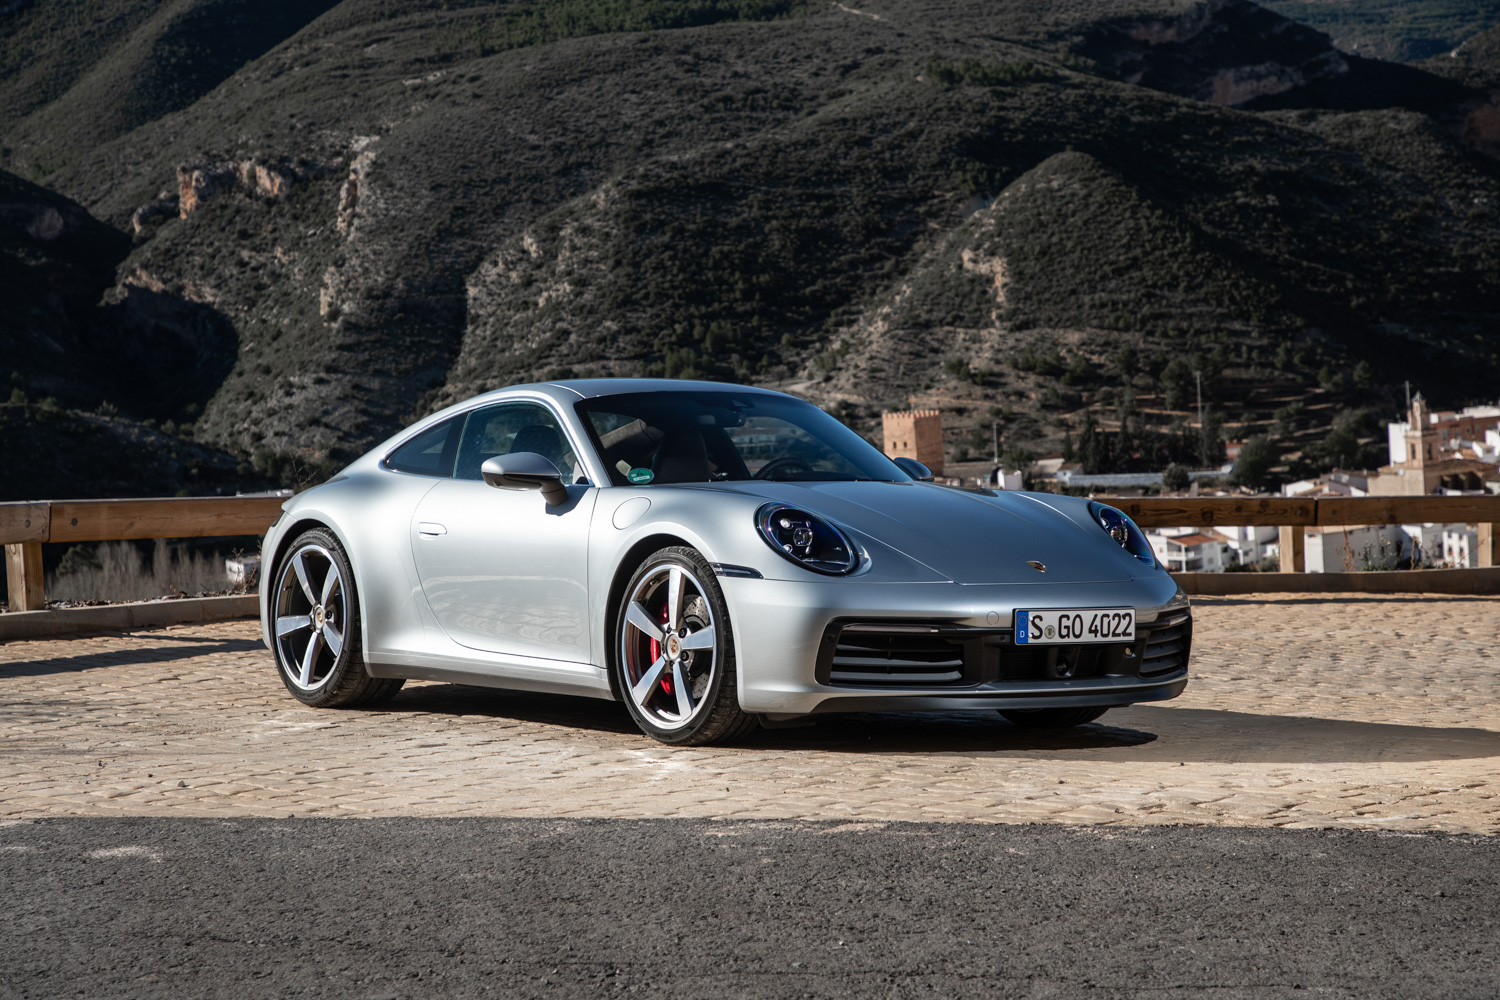 2020 Porsche 911 Carrera S 3/4 hill background front